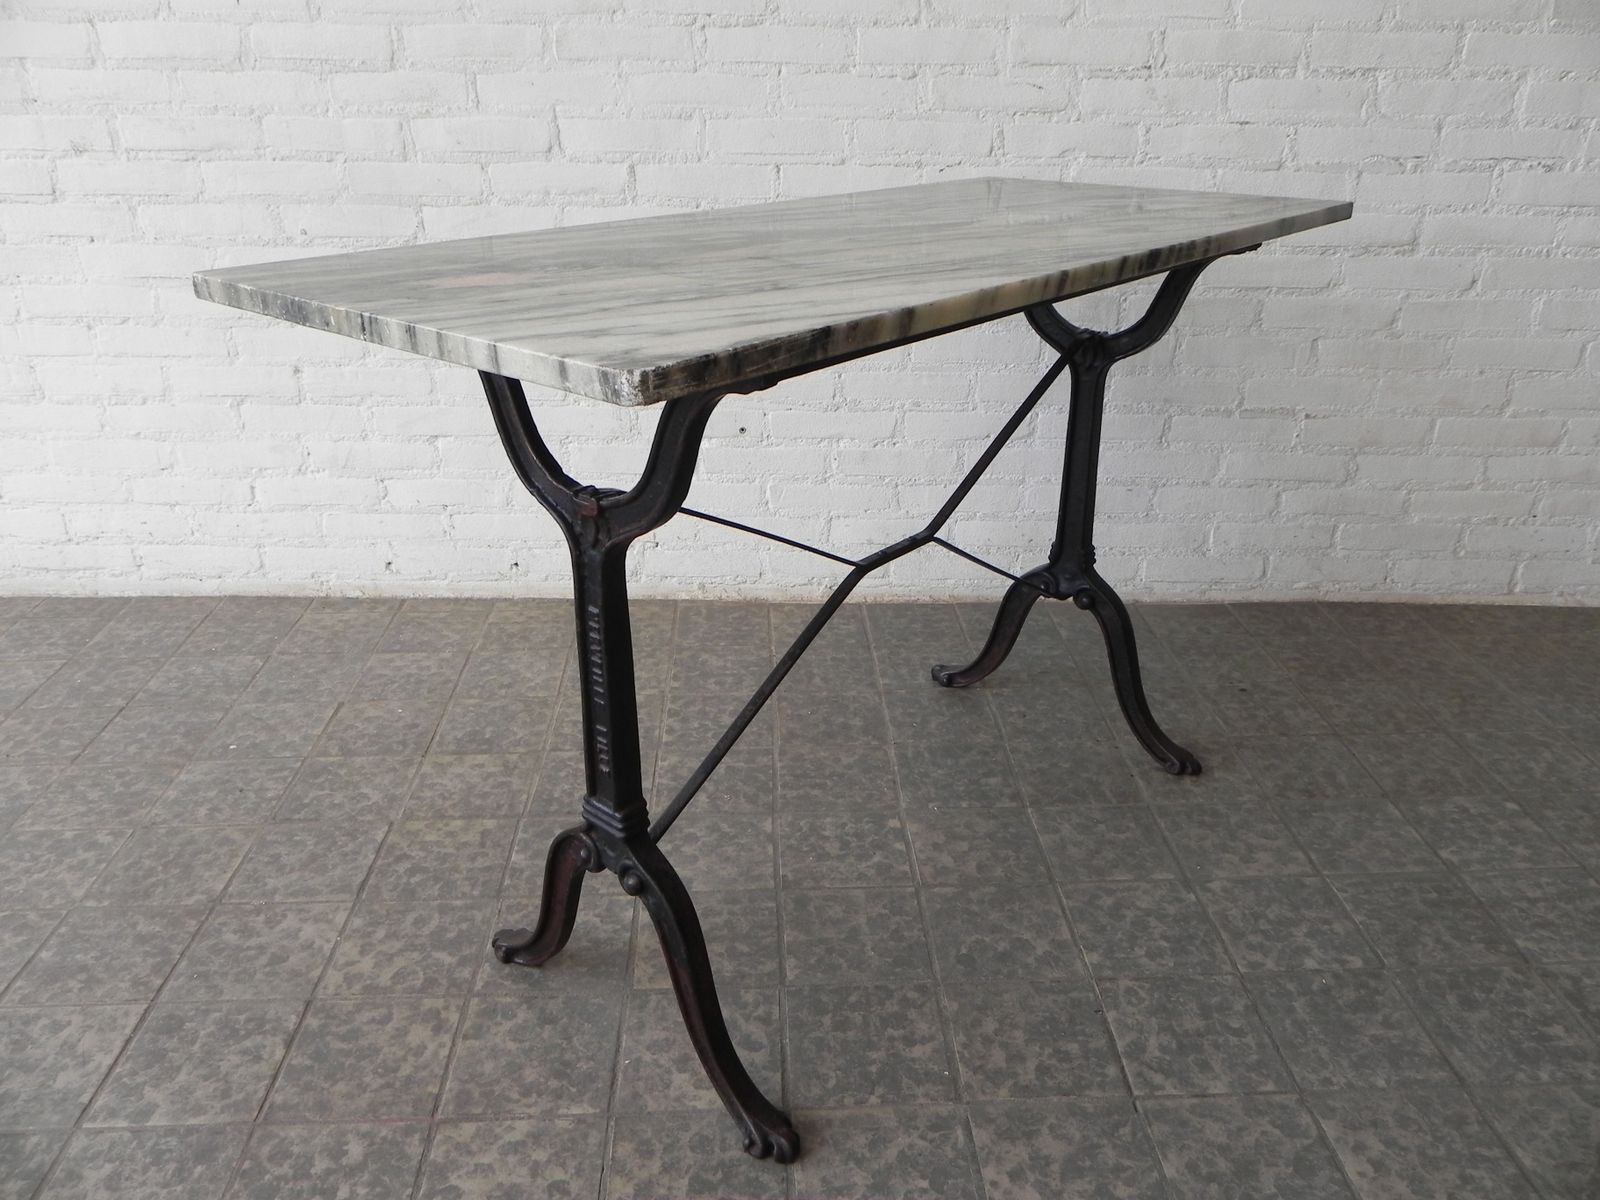 Deco Jardin Fonte Of Table De Jardin Art D Co Avec Base En Fonte 1930s En